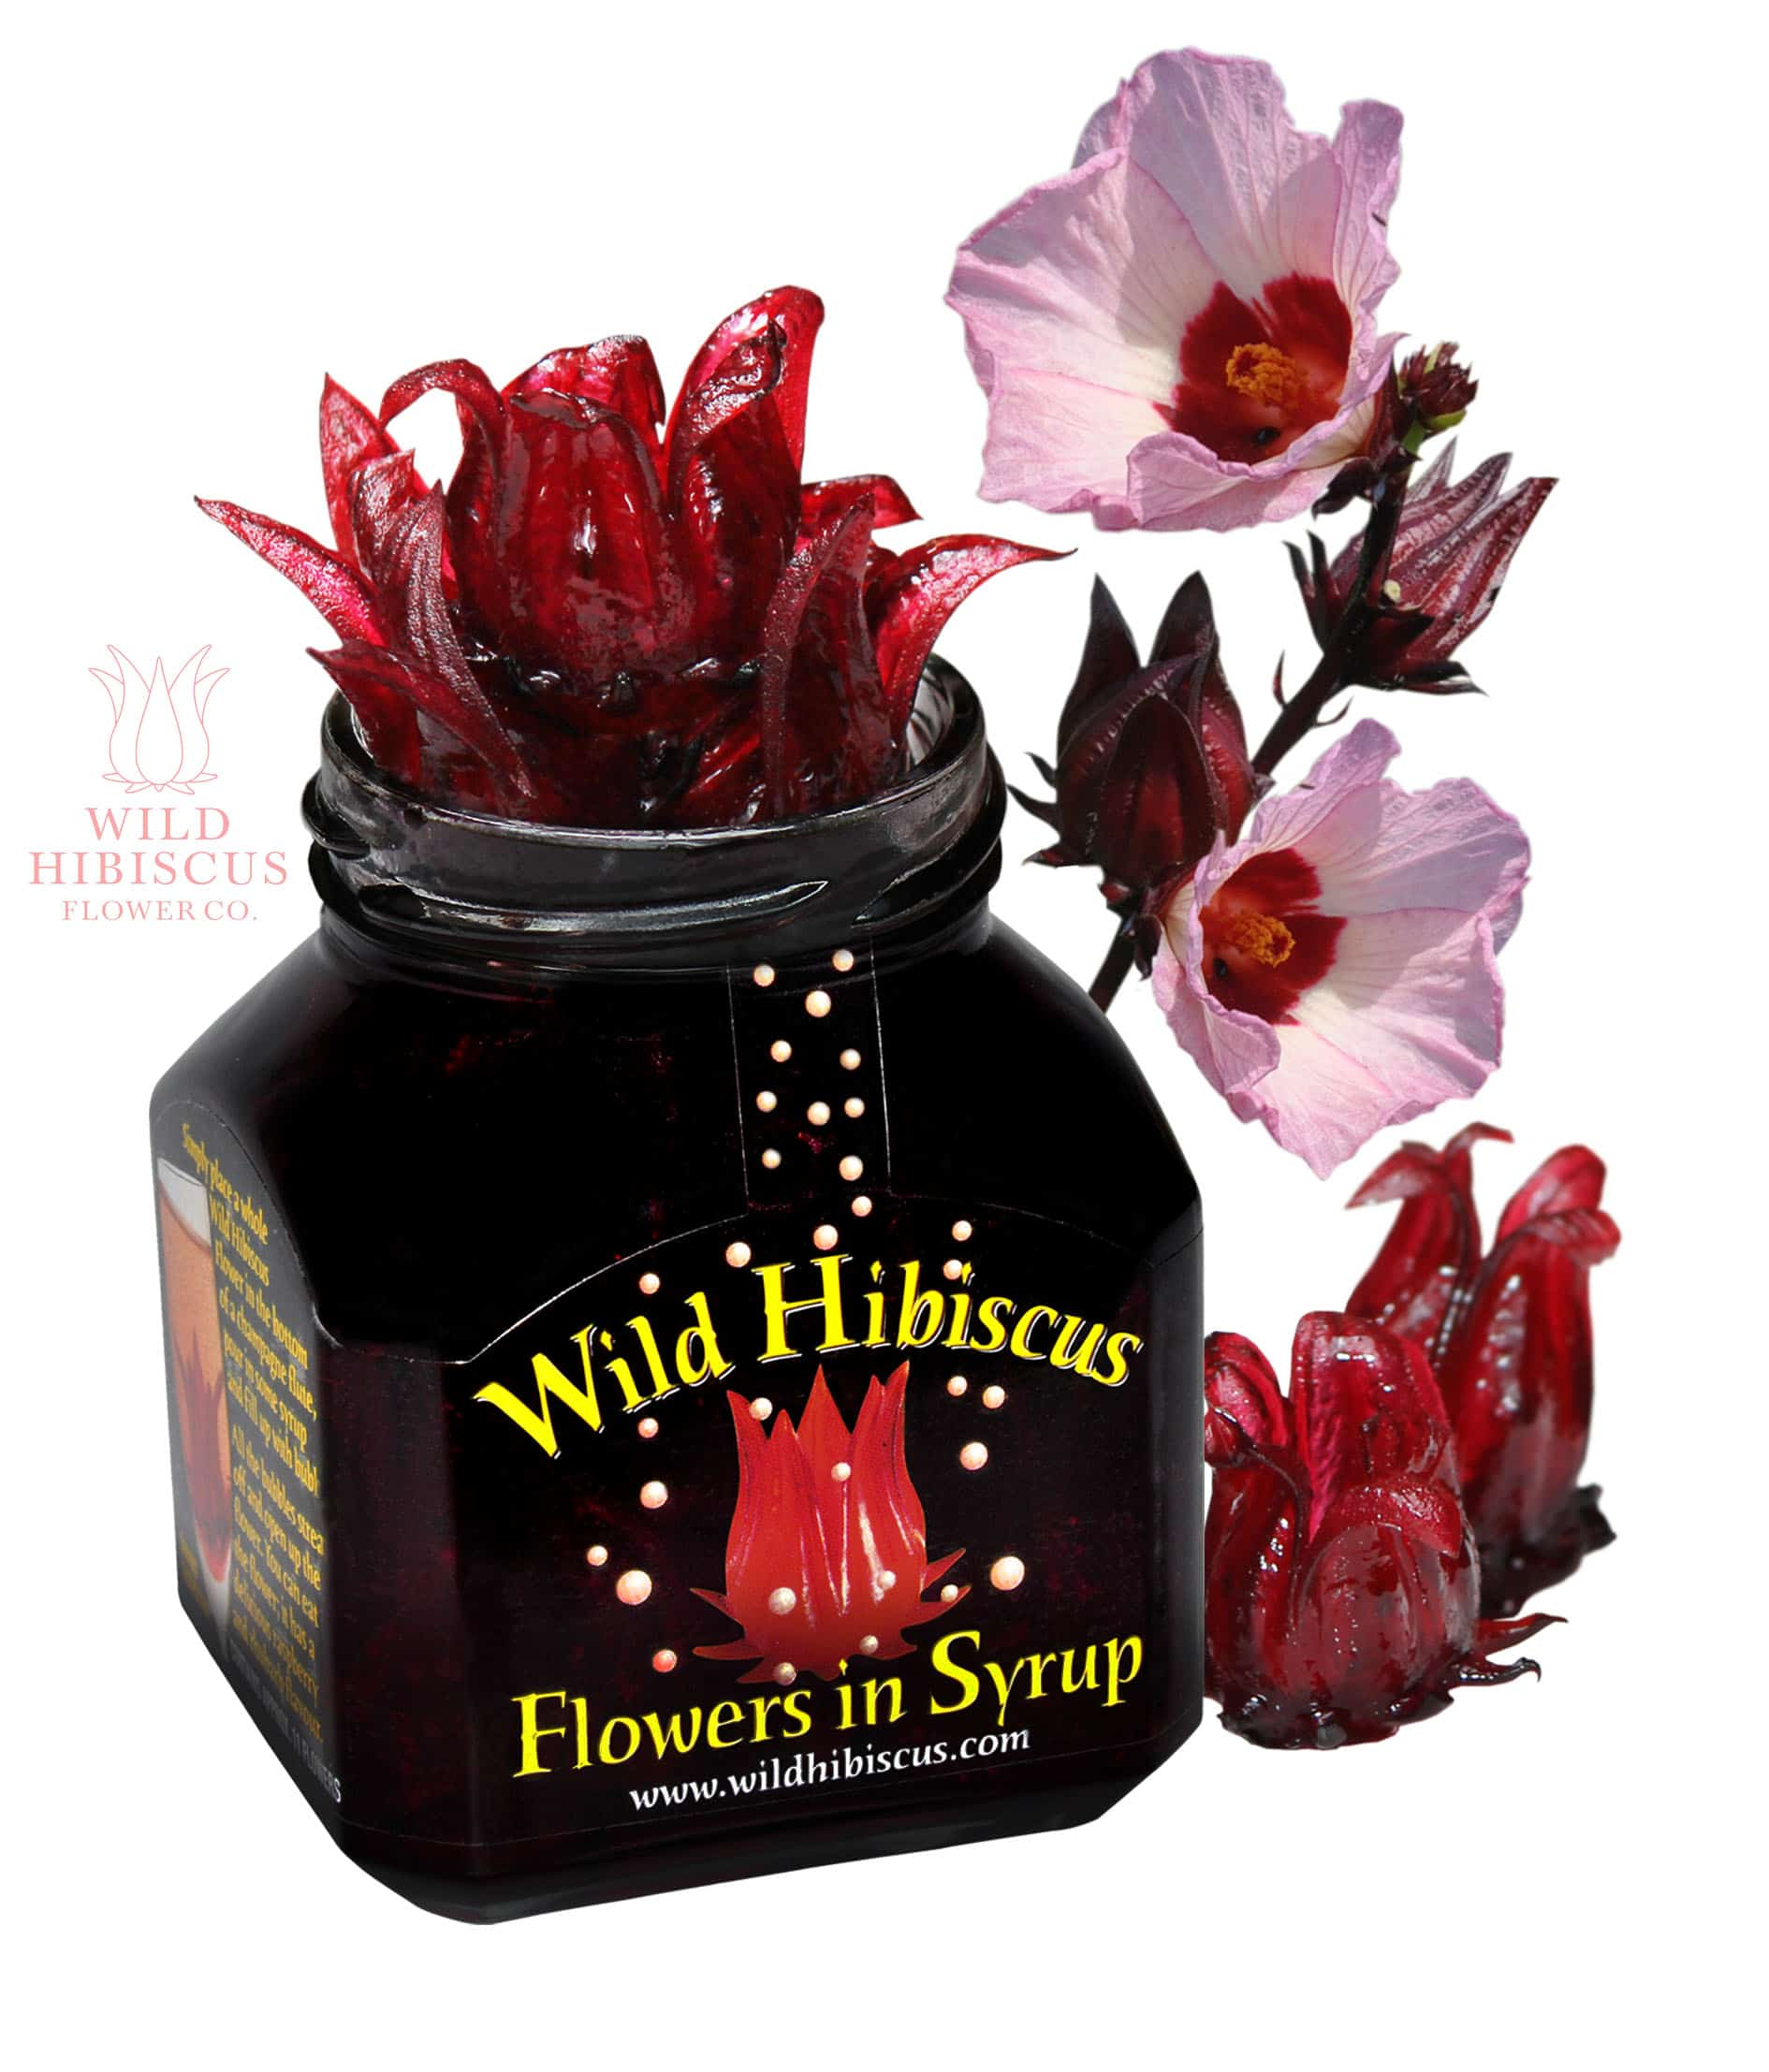 Enter to win a wild hibiscus flower prize pack ends 32315 blog prize a wild hibiscus flower co prize pack of edible goodies arv 55 that includes wild hibiscus flowers in syrup wild hibiscus flowers pyramid salt izmirmasajfo